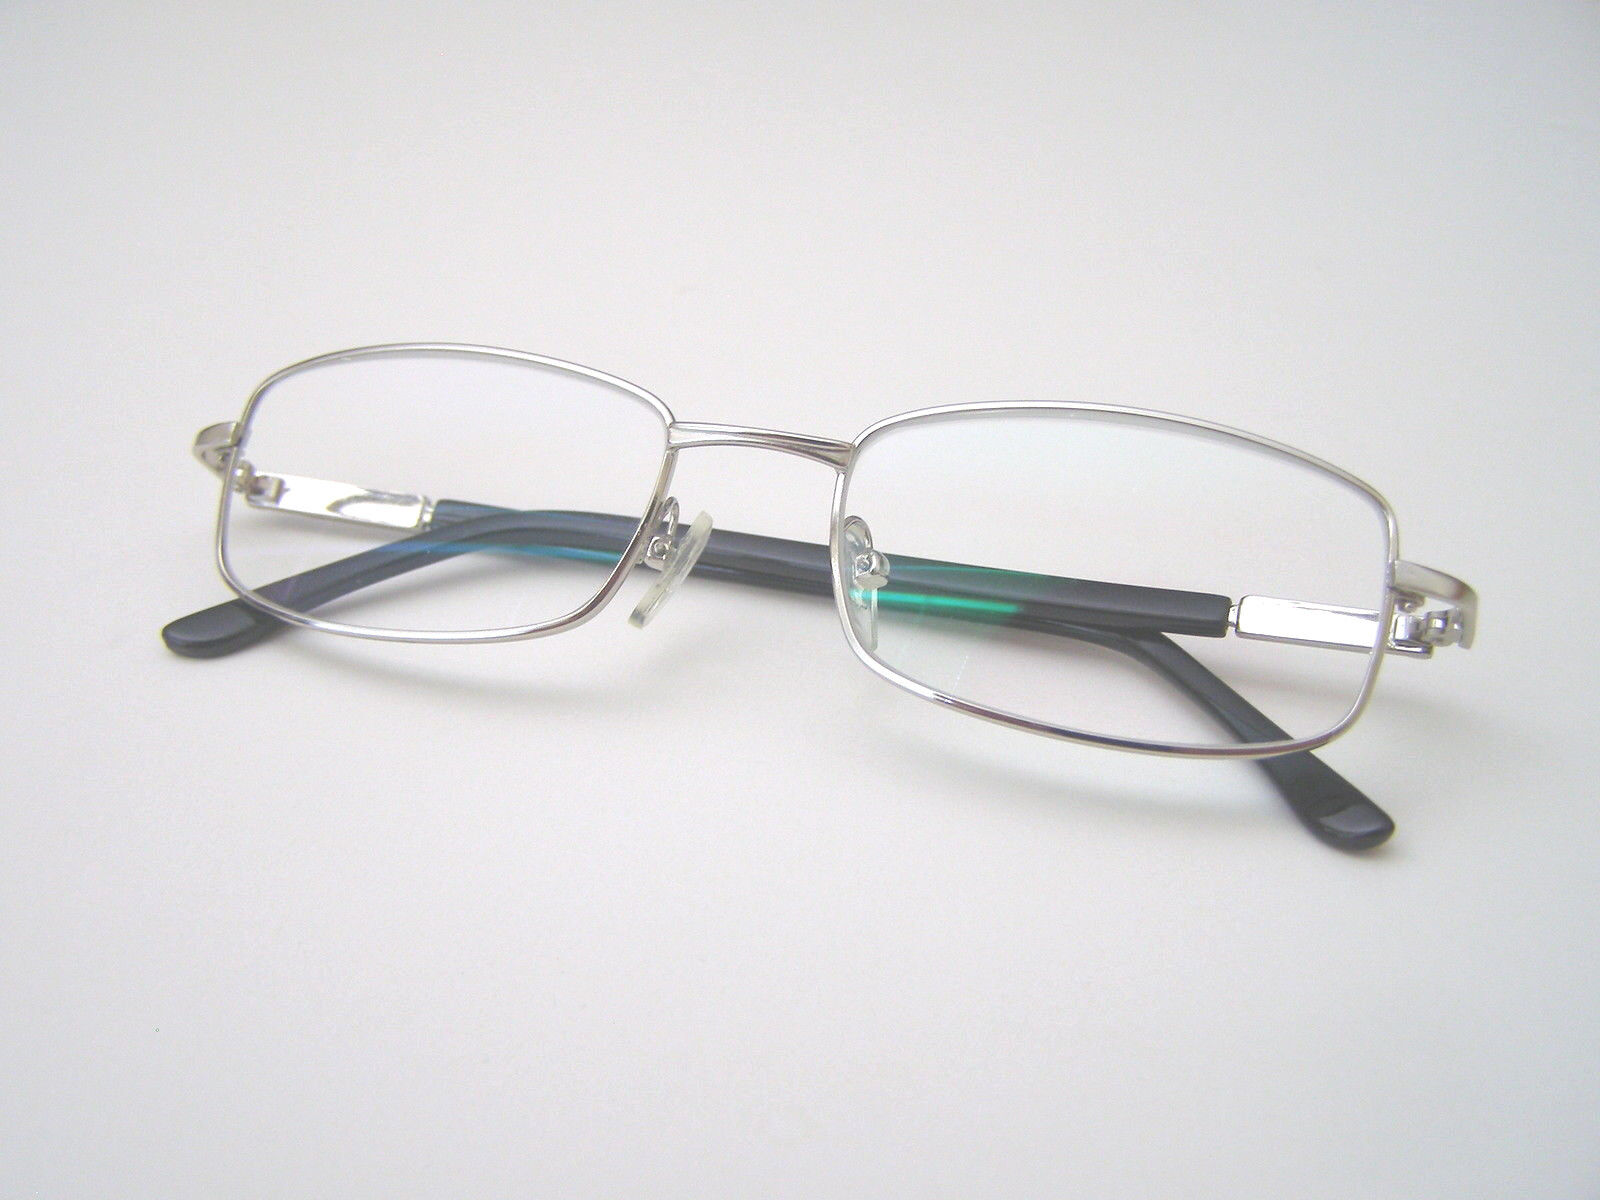 silver color frame real glass lens reading glasses 1 pair